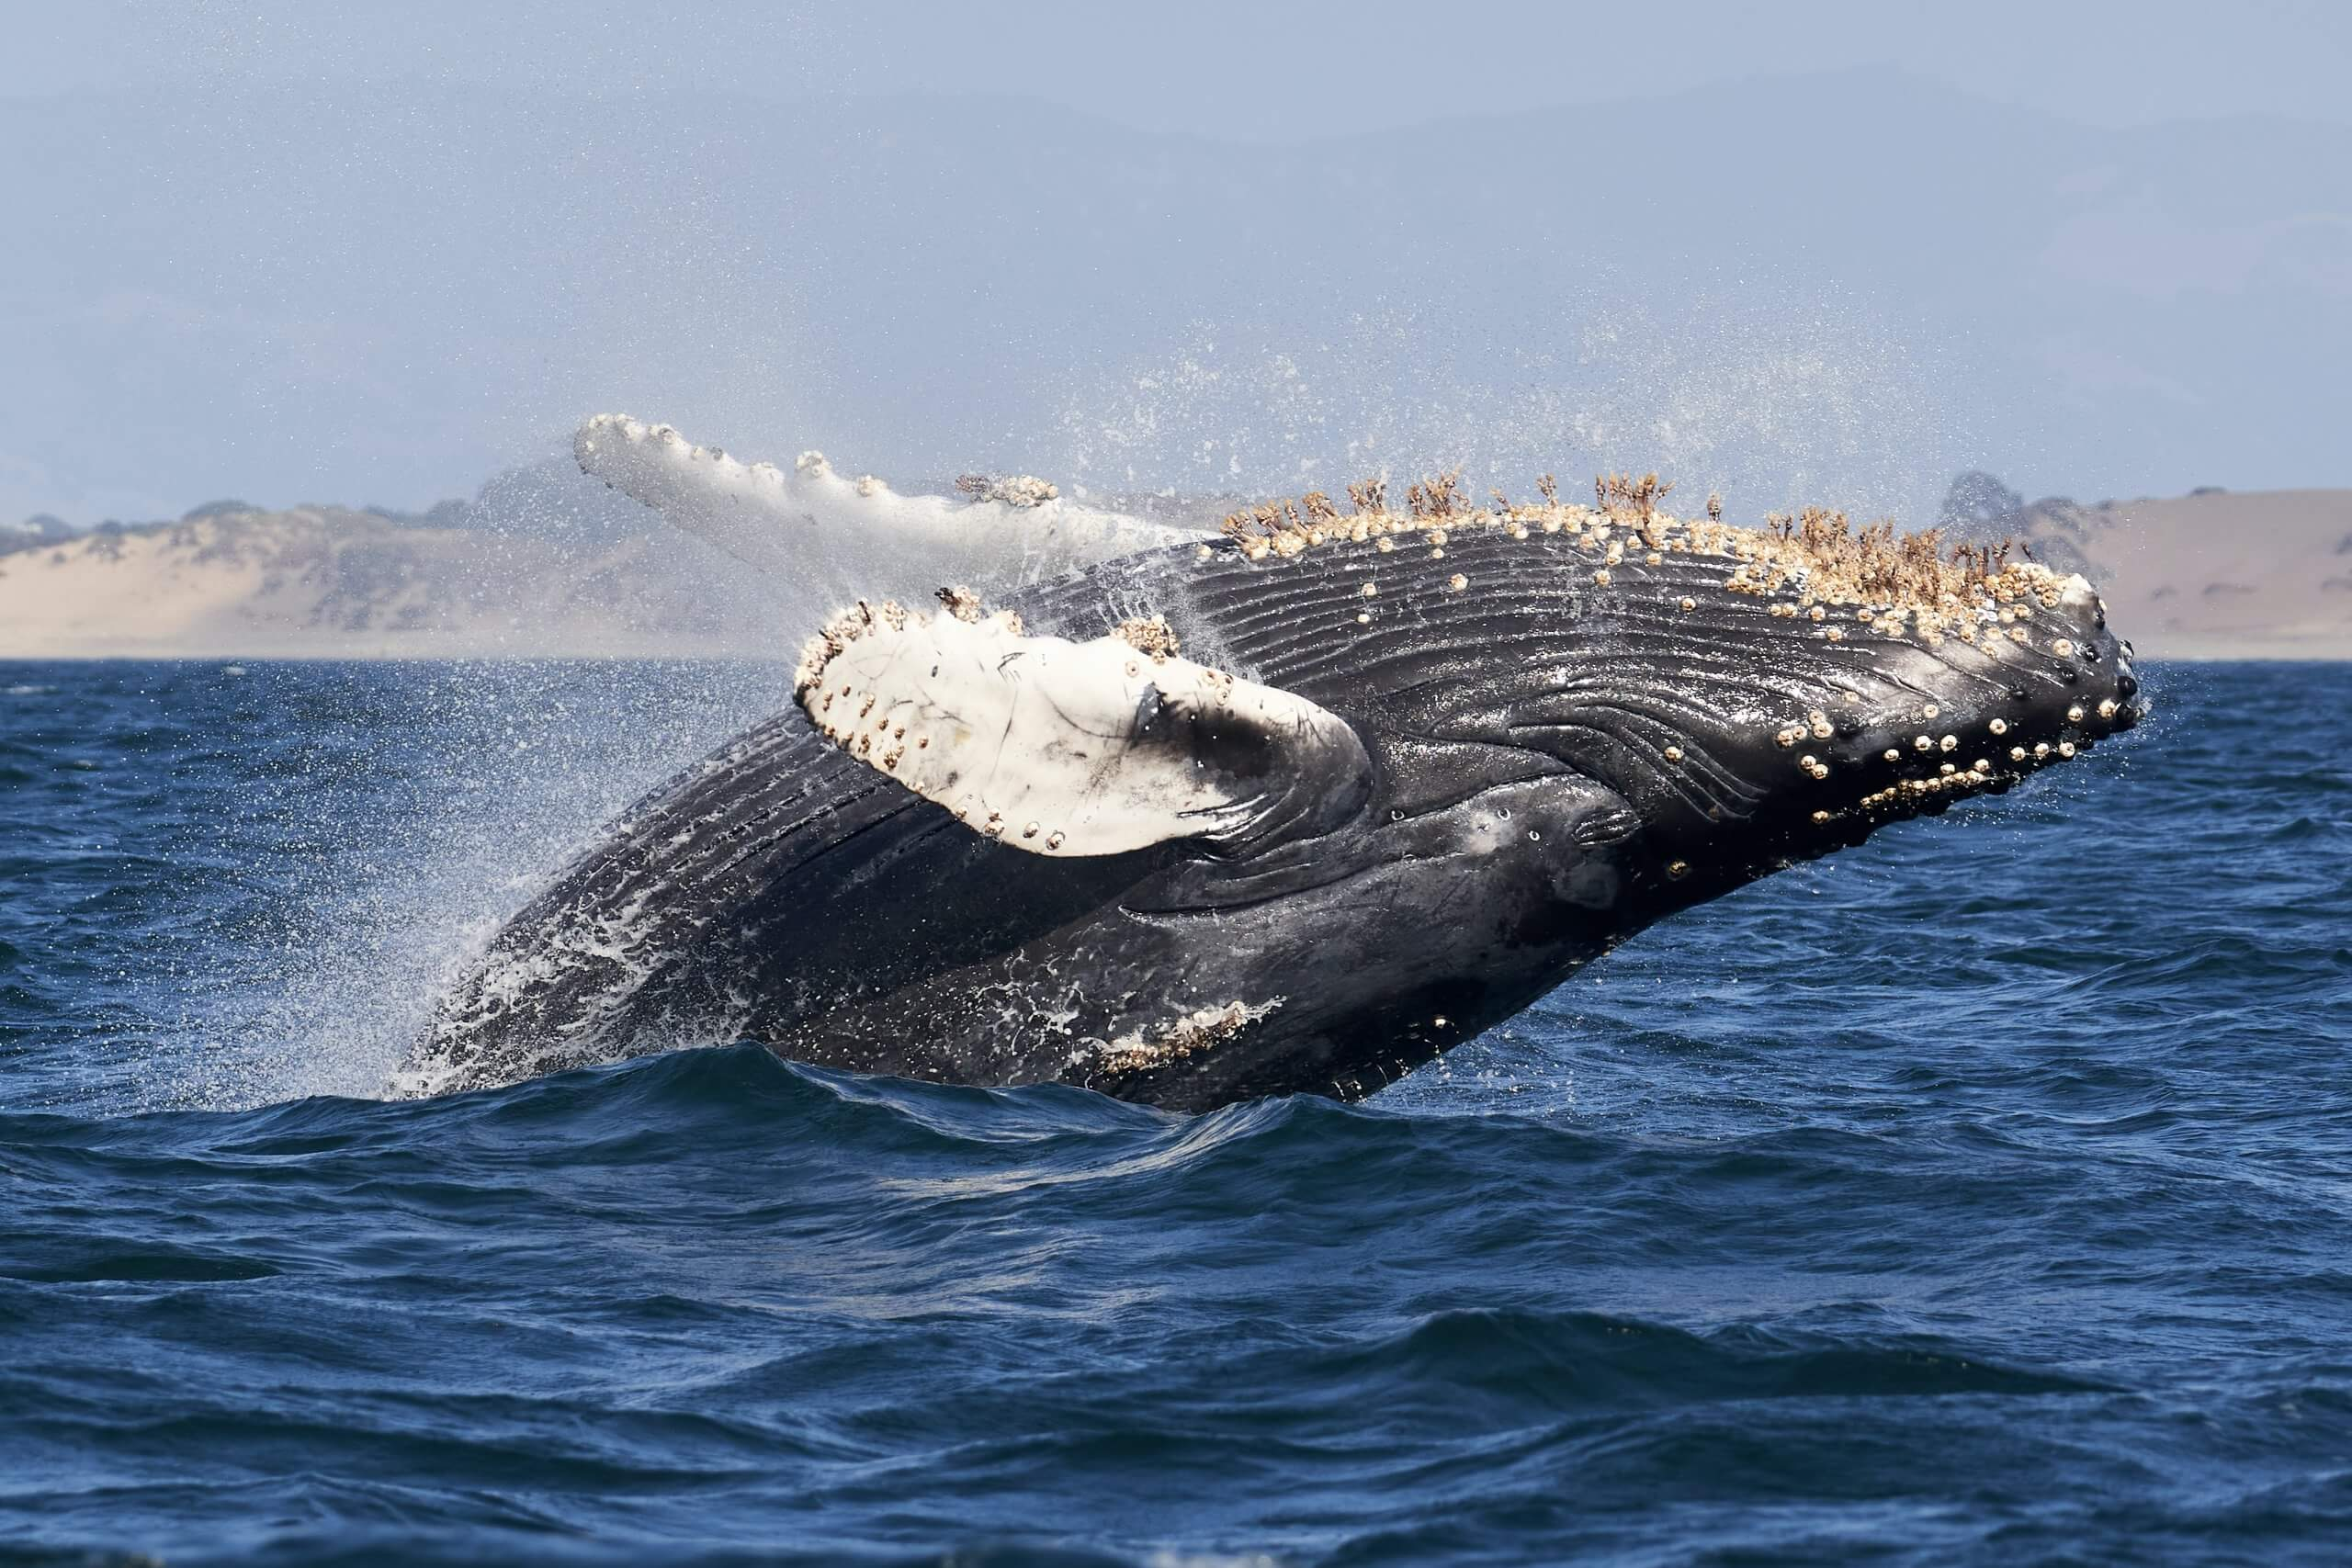 Whale watching at Moss Landing in Monterey Bay